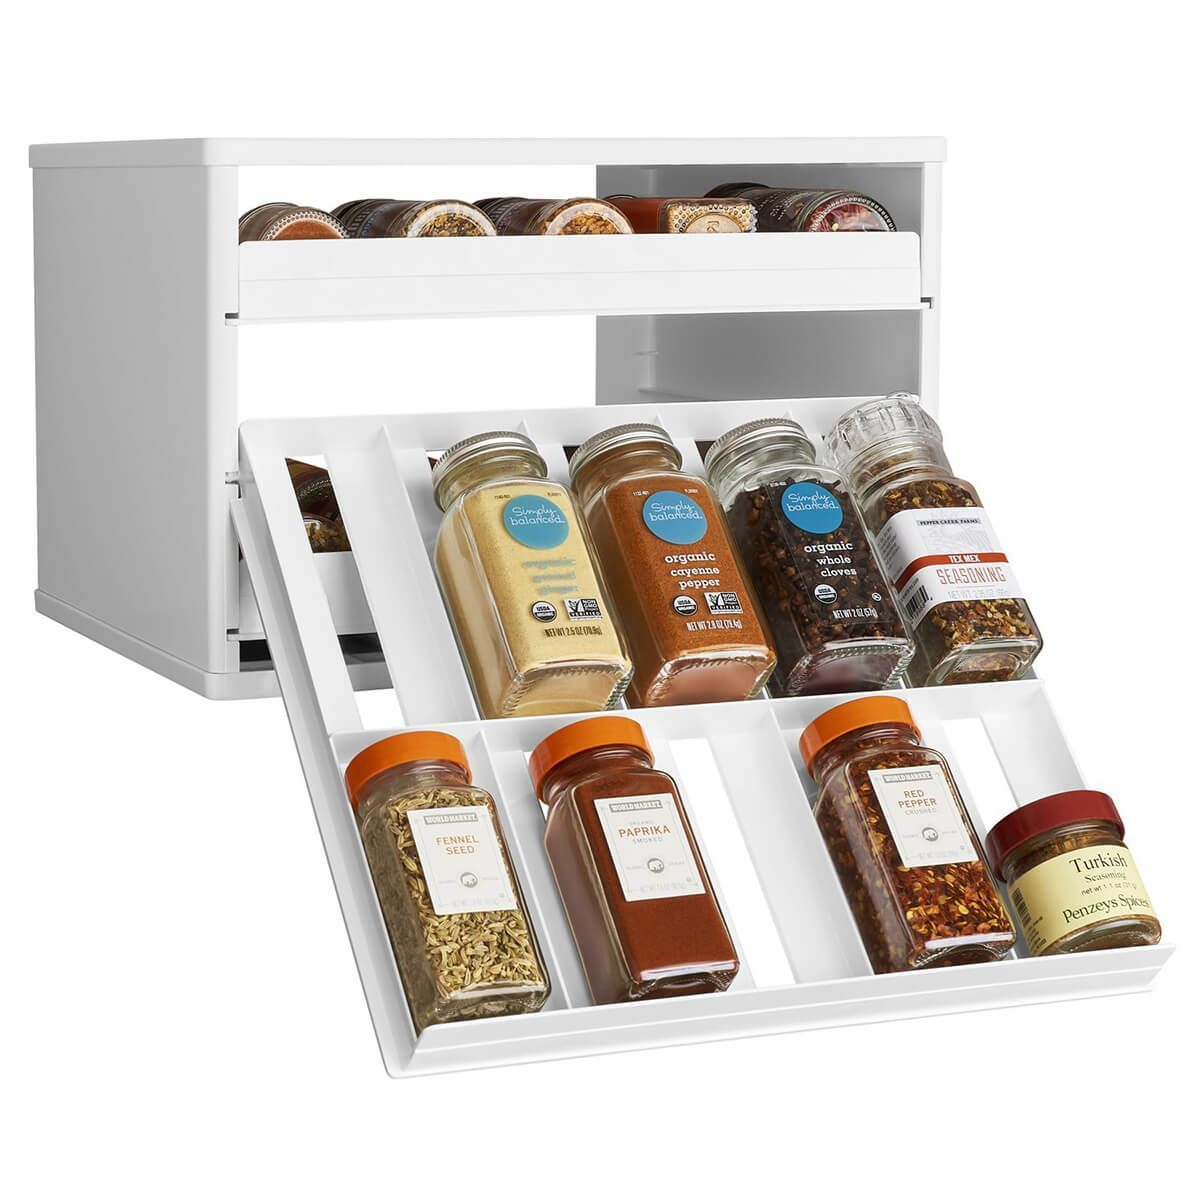 28 Versatile Organizer Products For Kitchen To Keep Your Space